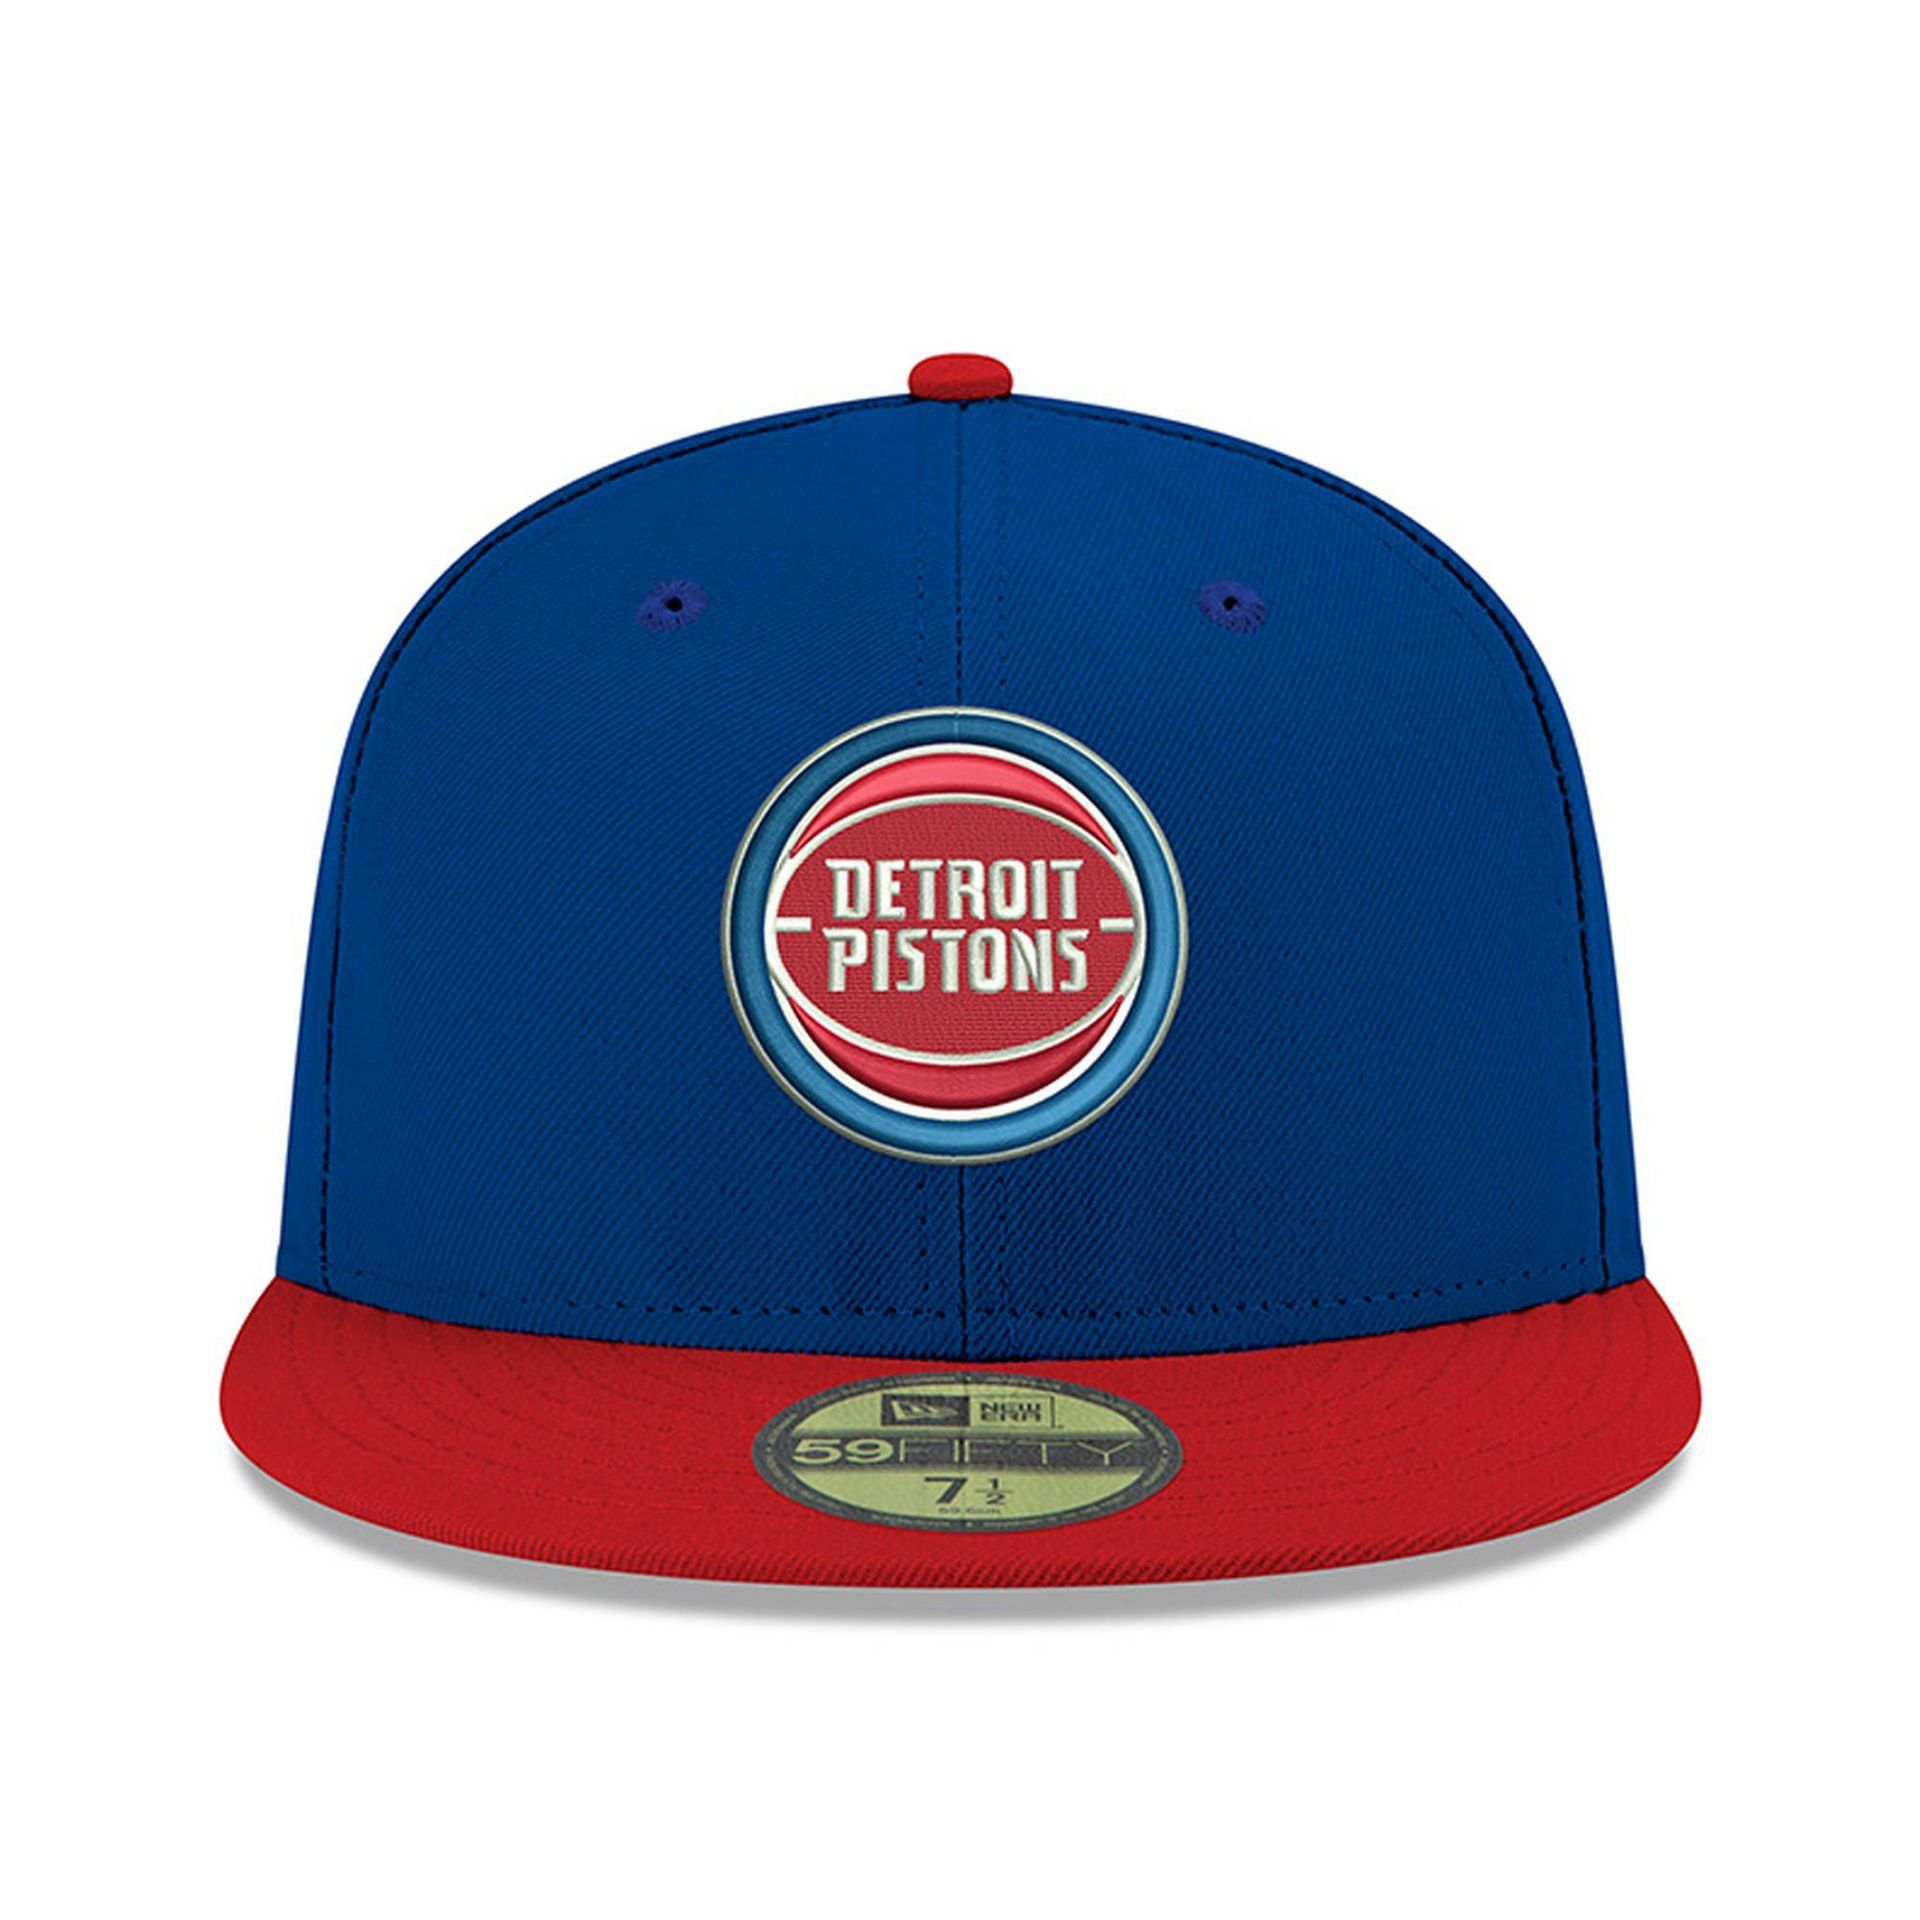 e3be46148 NFL Detroit Pistons Blue Official Team Color 2Tone 59FIFTY Fitted ...